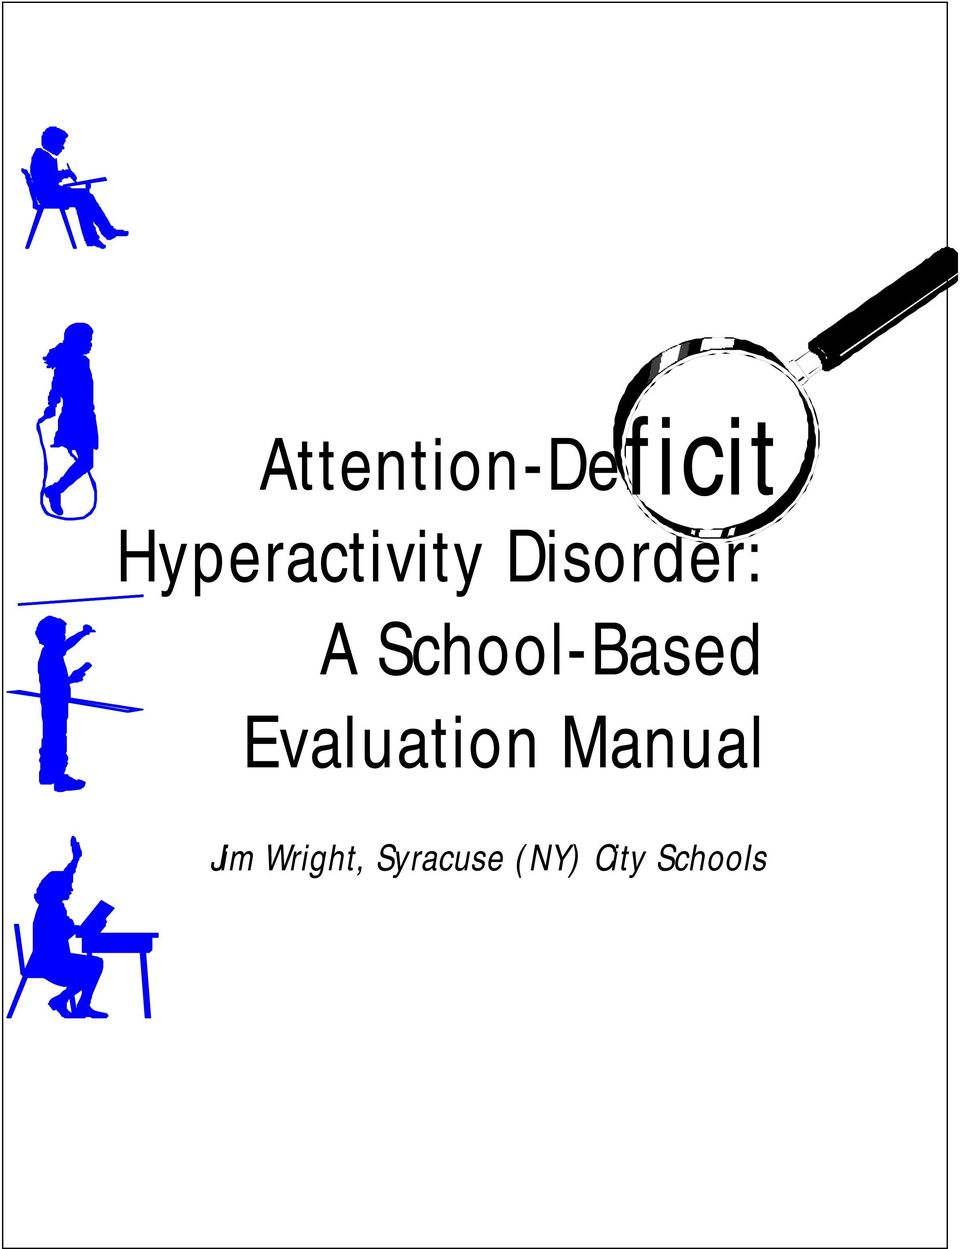 School-Based Evaluation